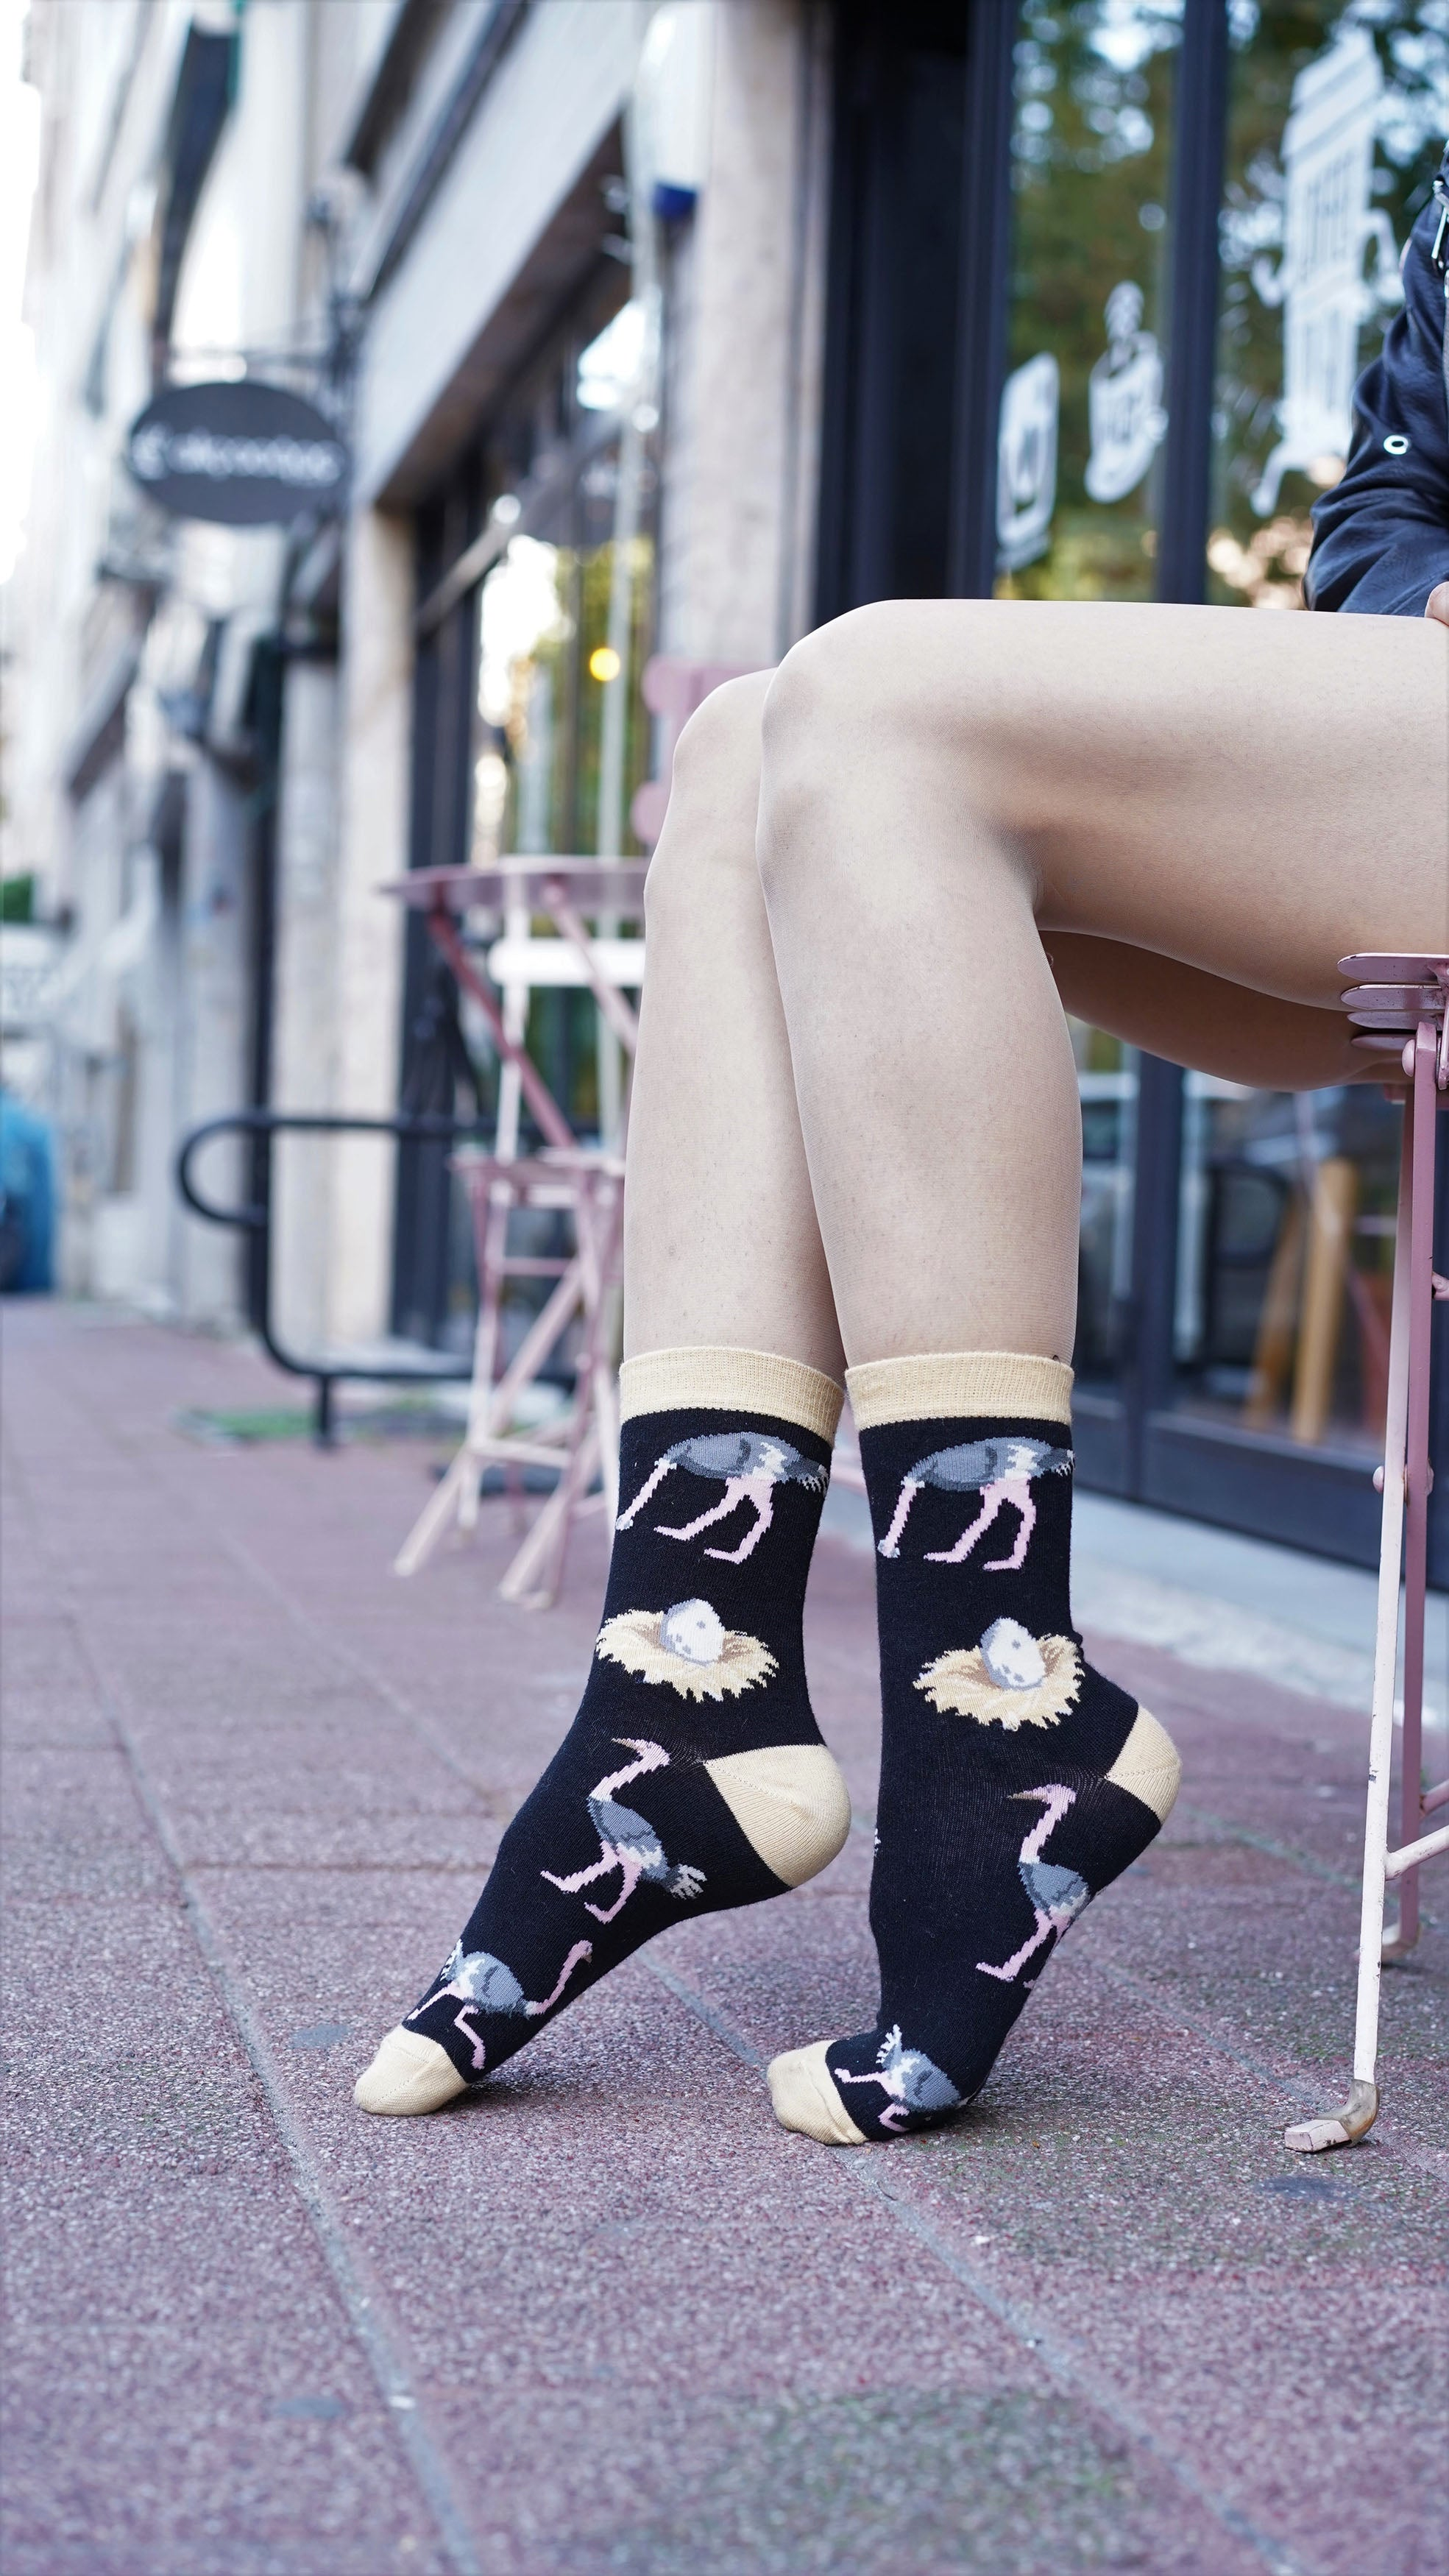 Women's Ostrich Socks